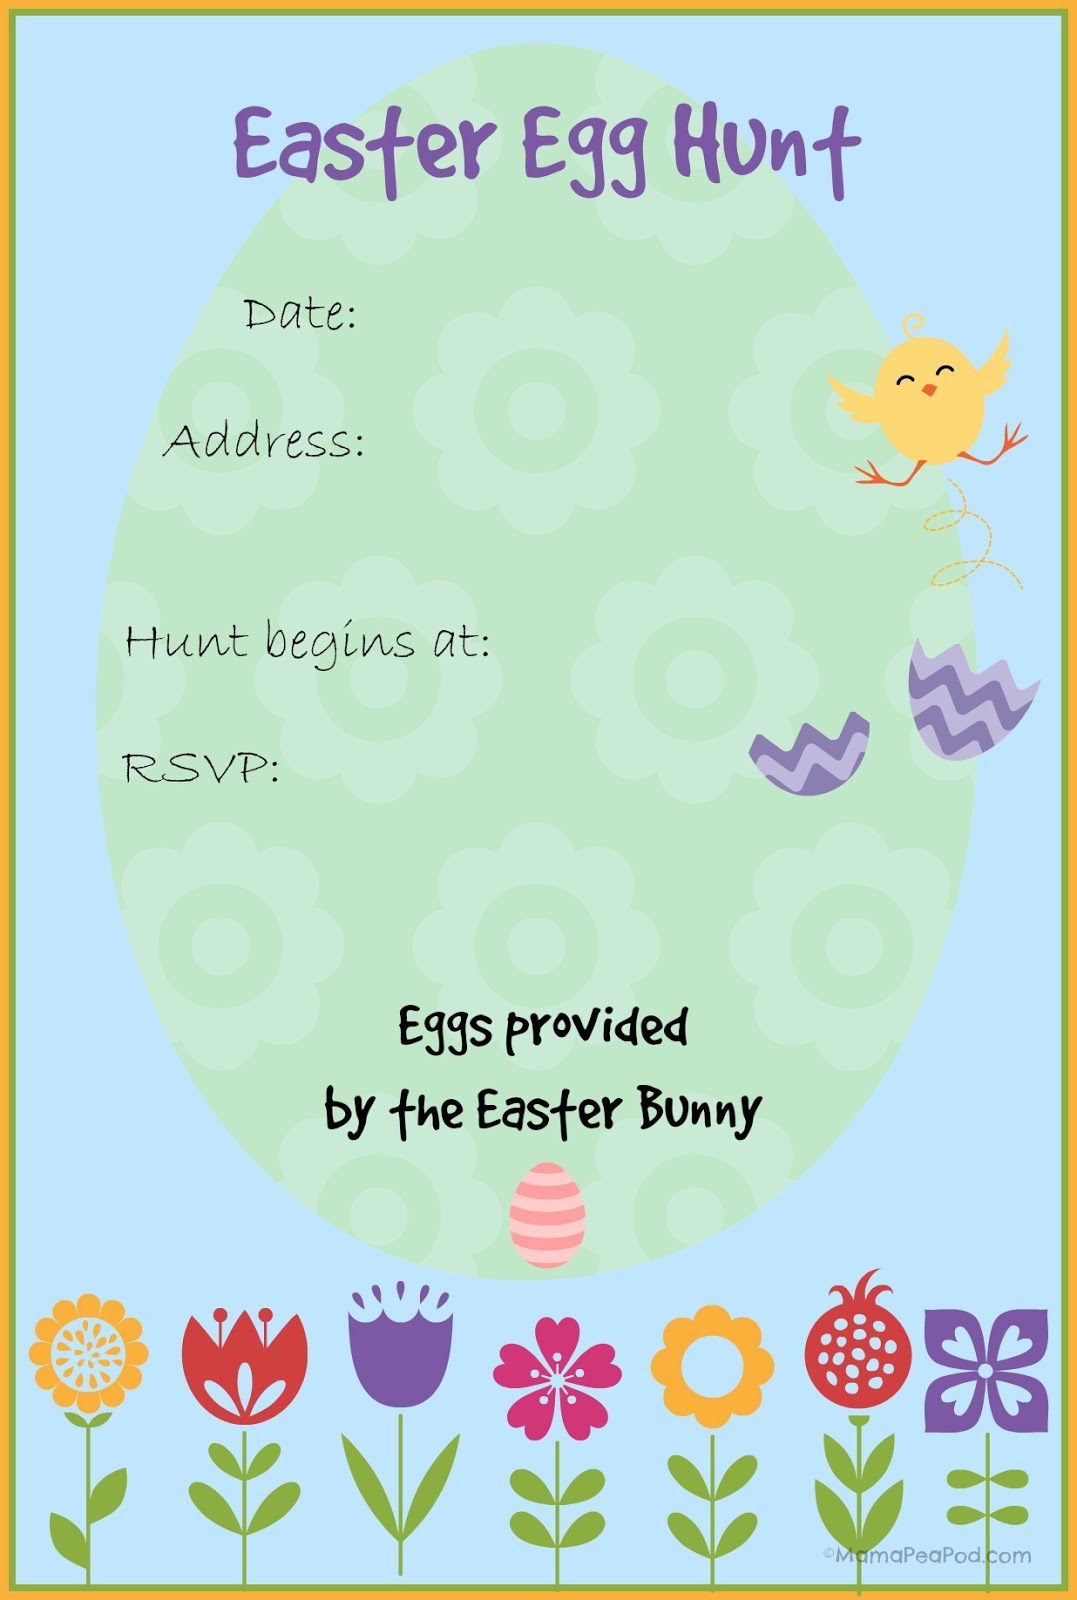 FREE PRINTABLE easter egg hunt party invitation